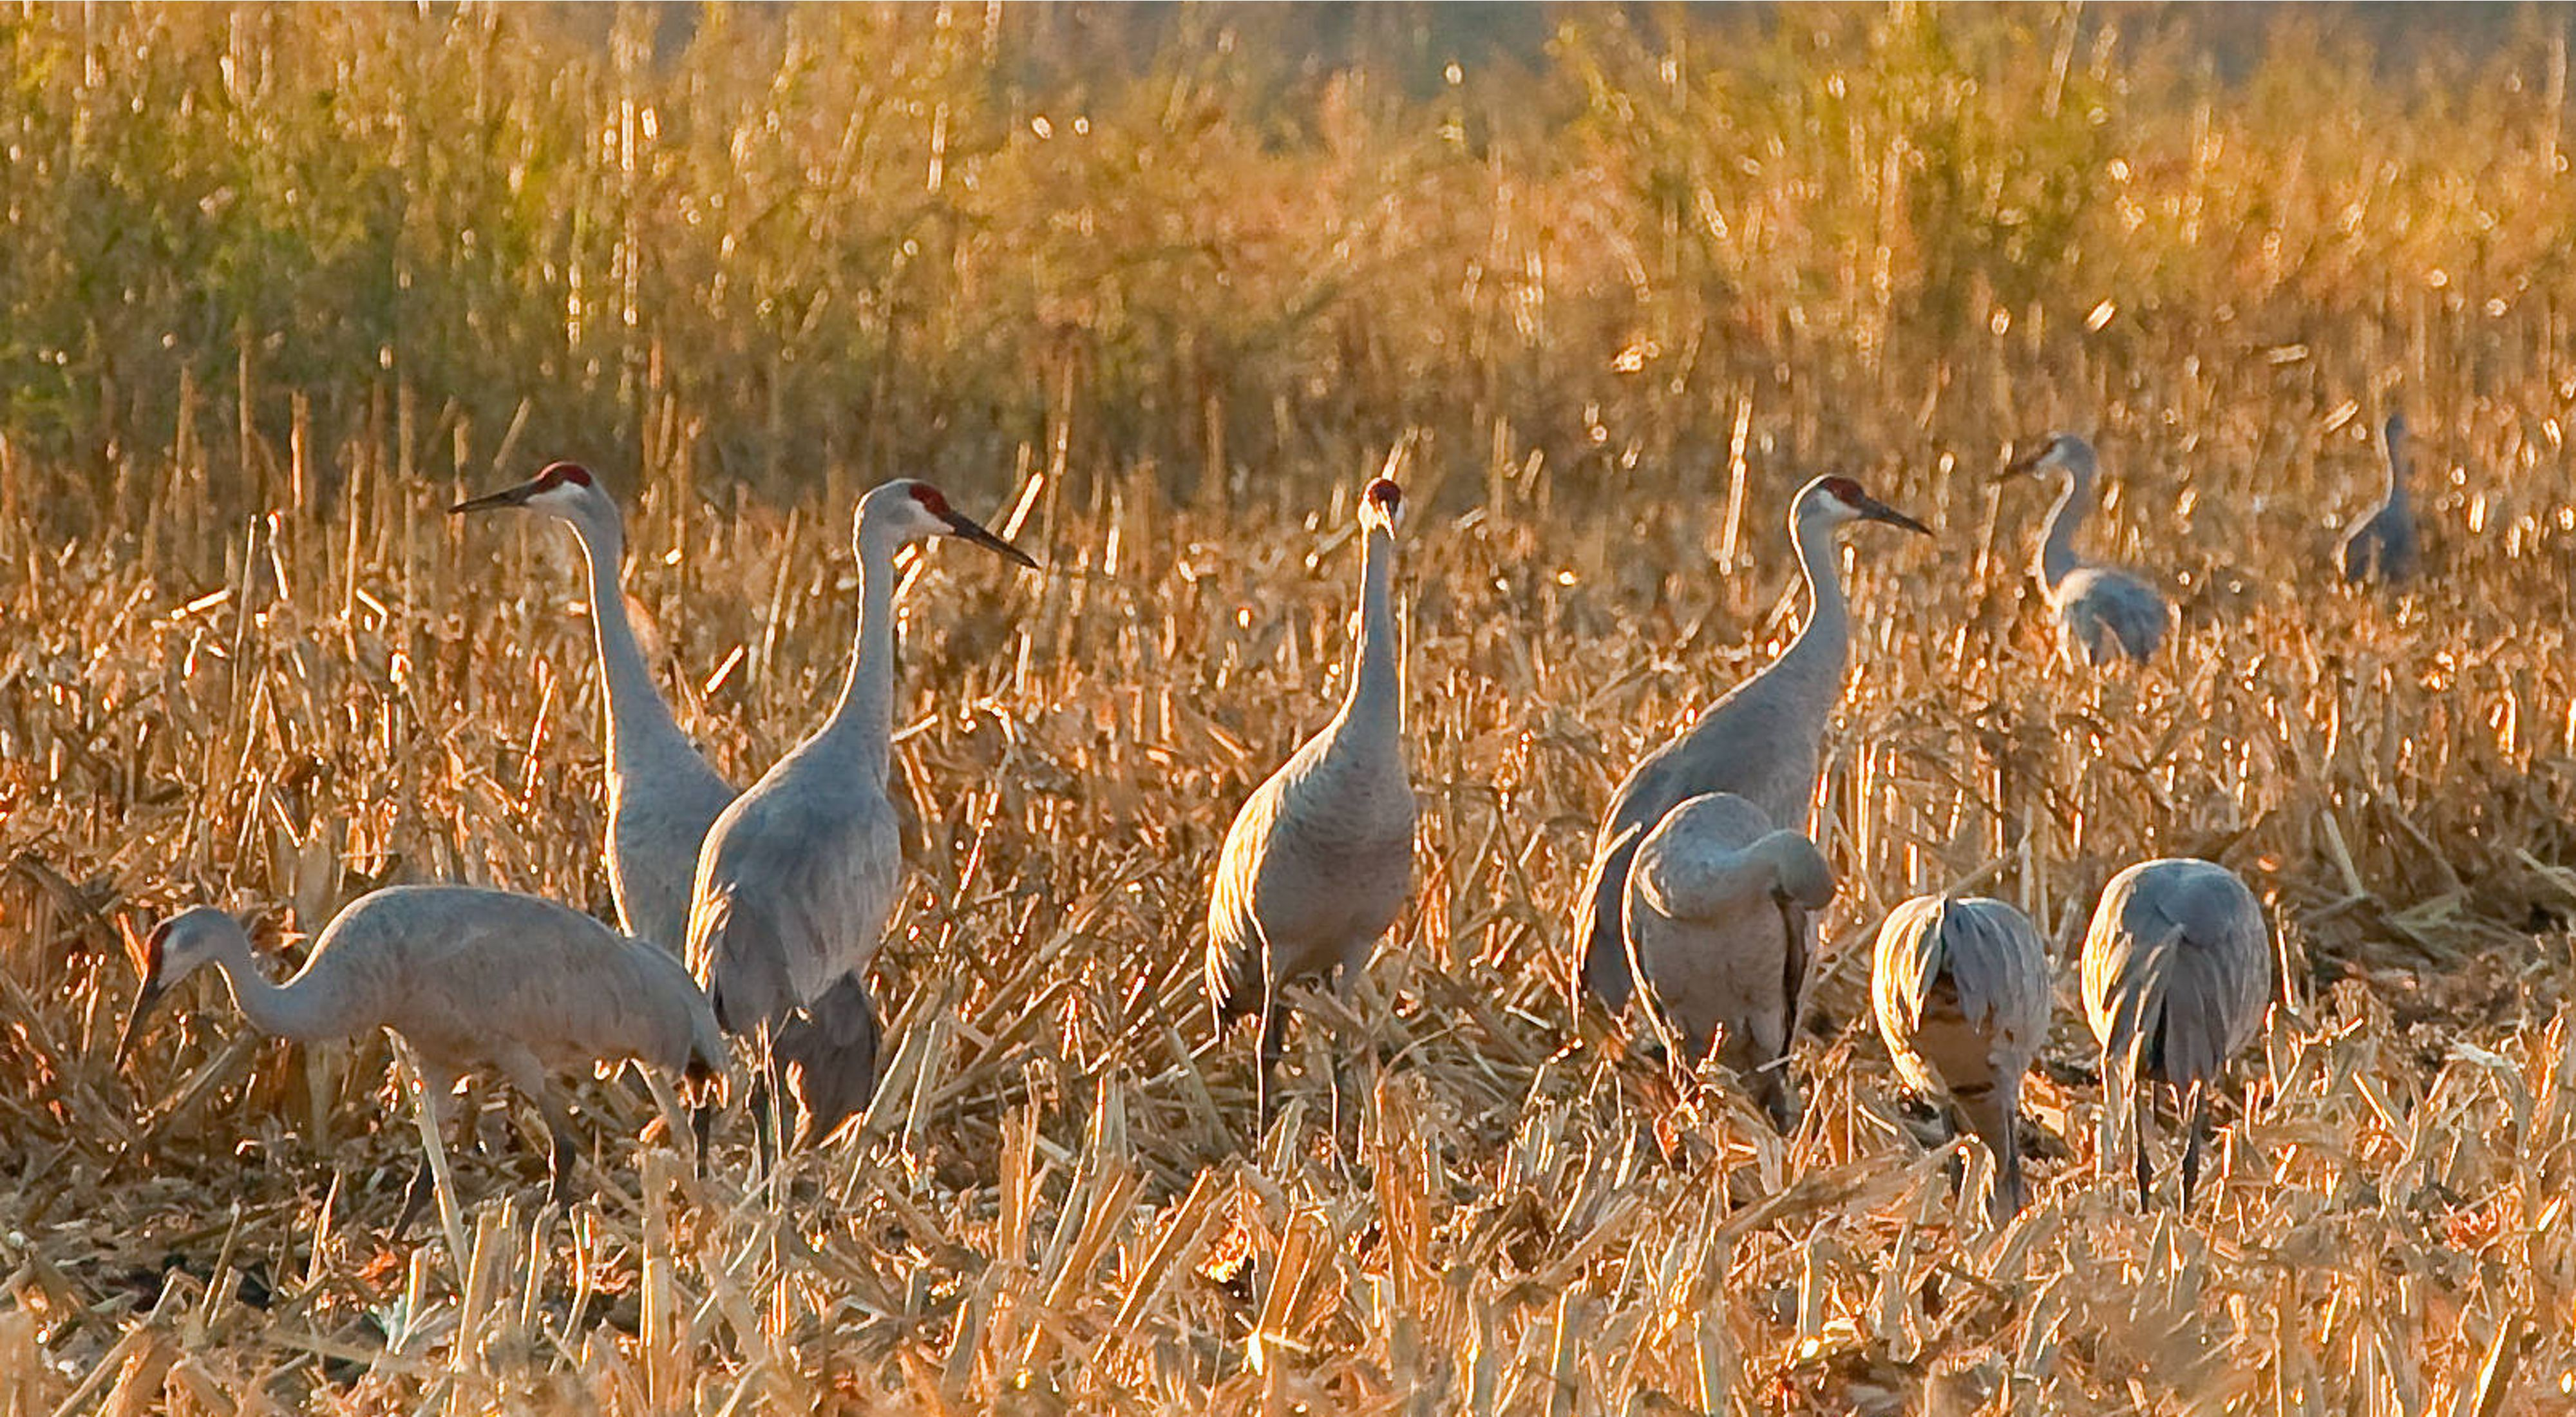 A group of sandhill cranes gather in the Sacramento-San Joaquin Delta